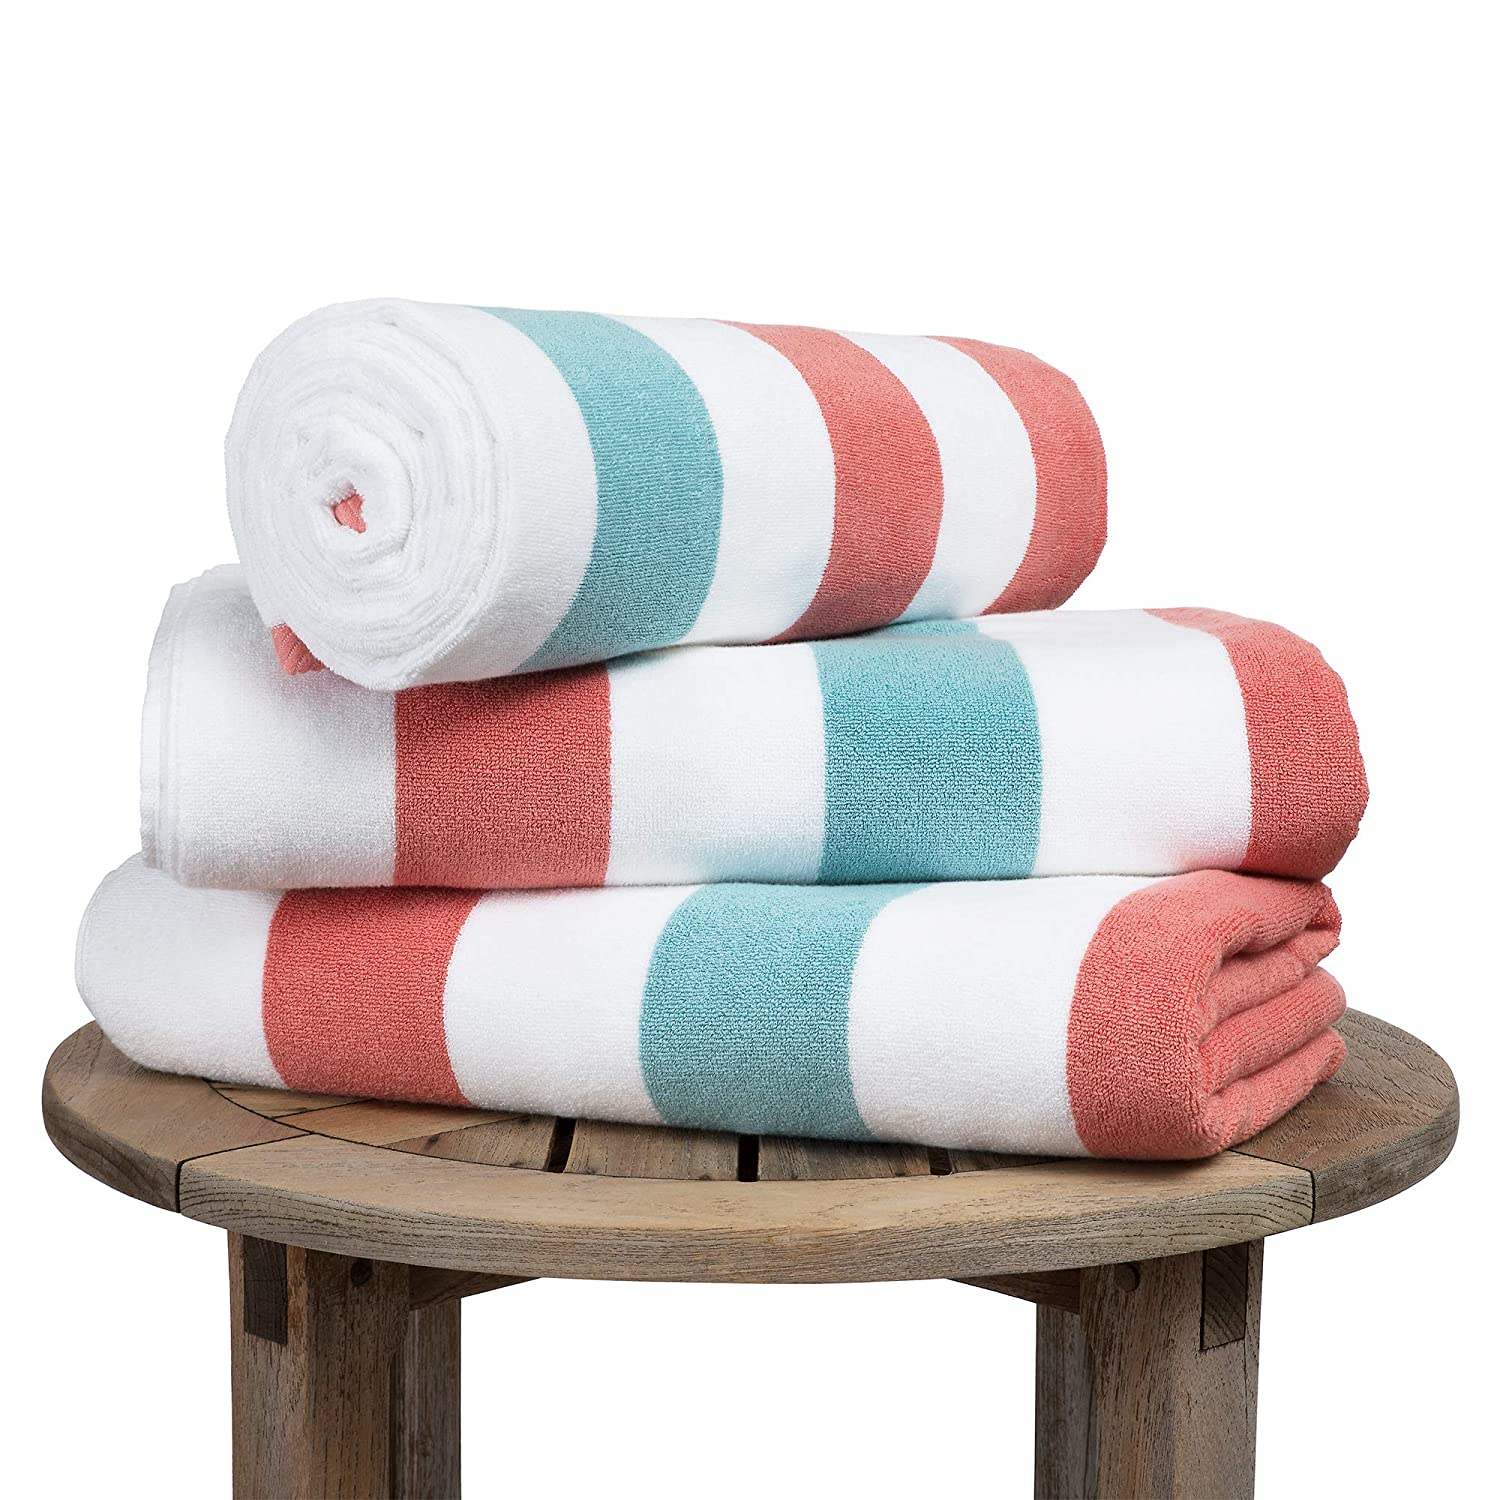 The Oversize Plush Cabana Towel travel product recommended by Laurice Wardini on Lifney.